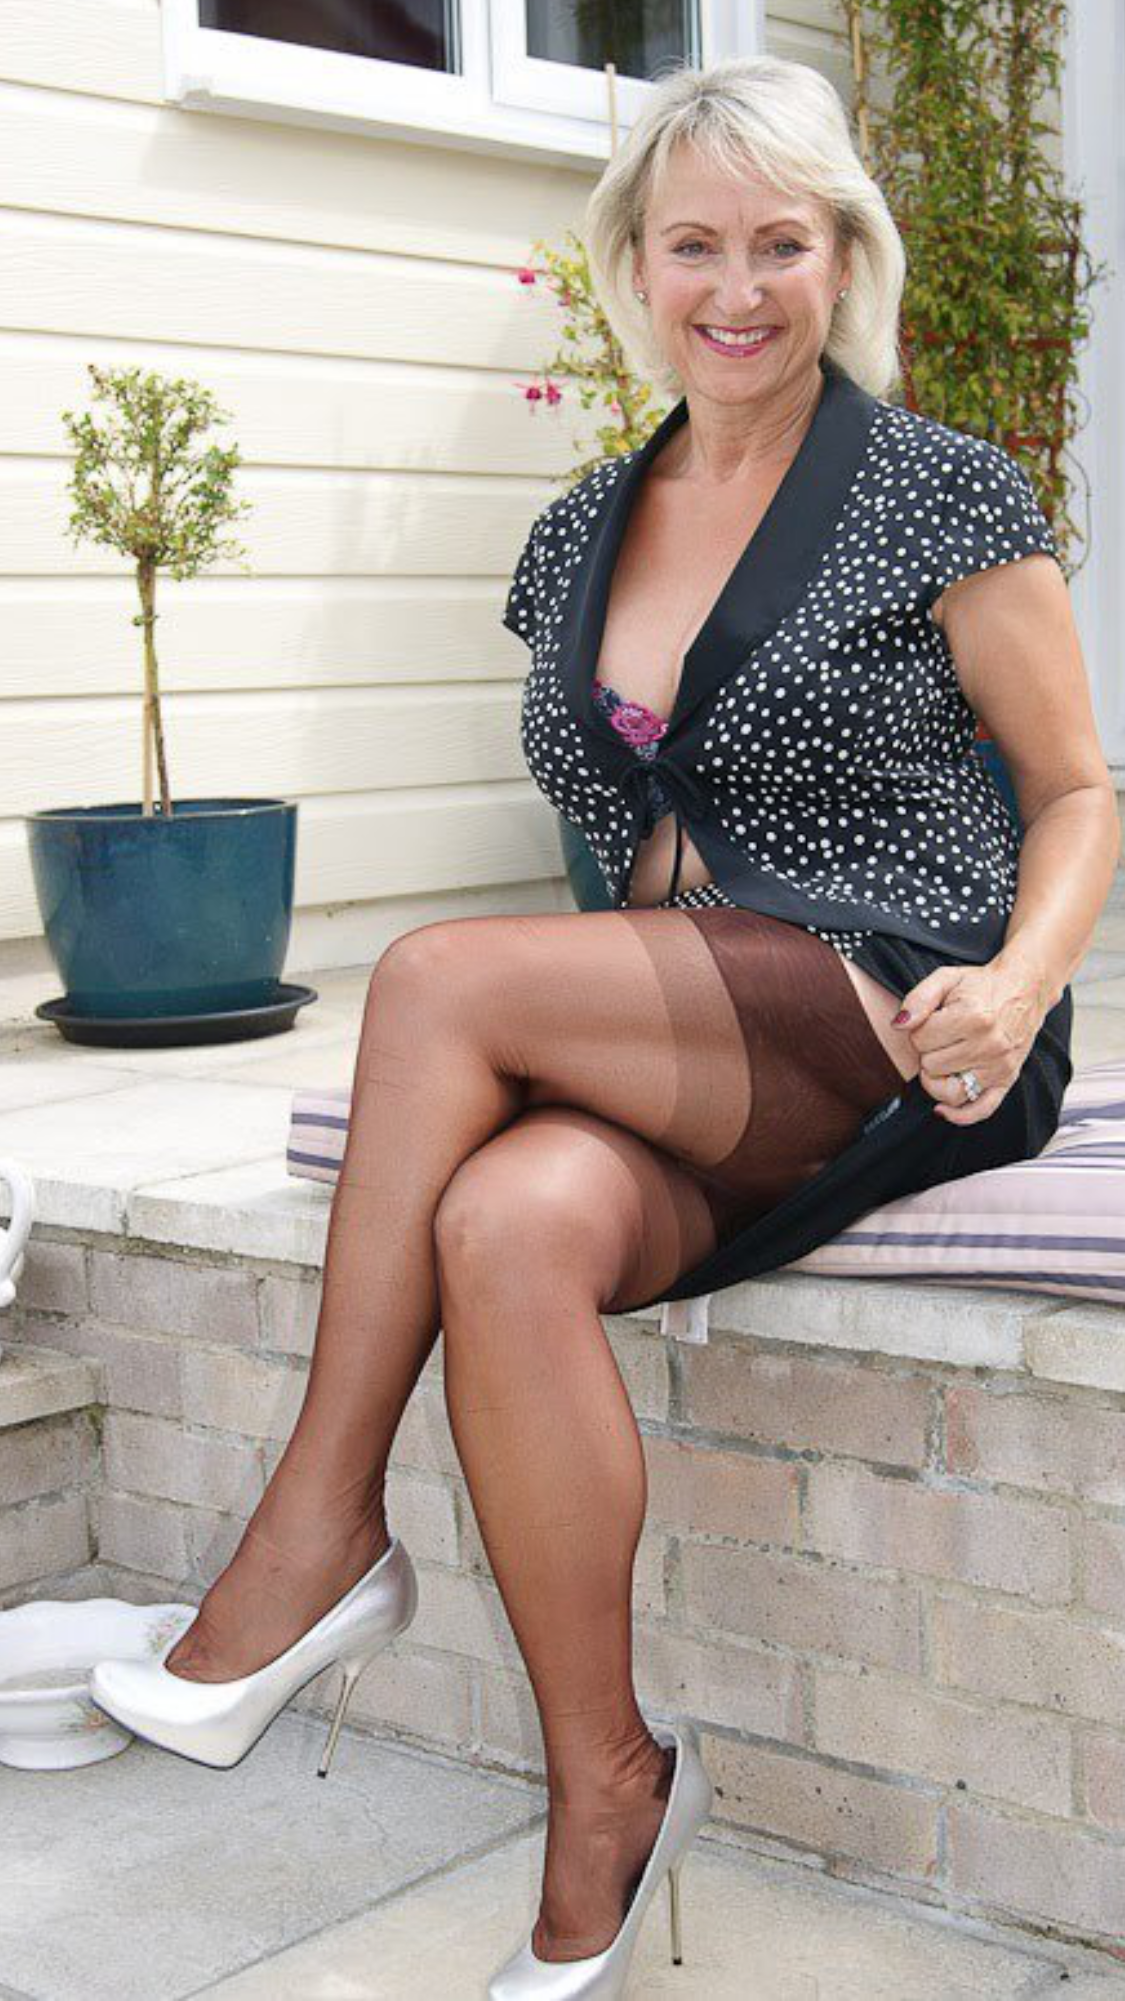 michelle's nylons | milf | pinterest | stockings, legs and stocking